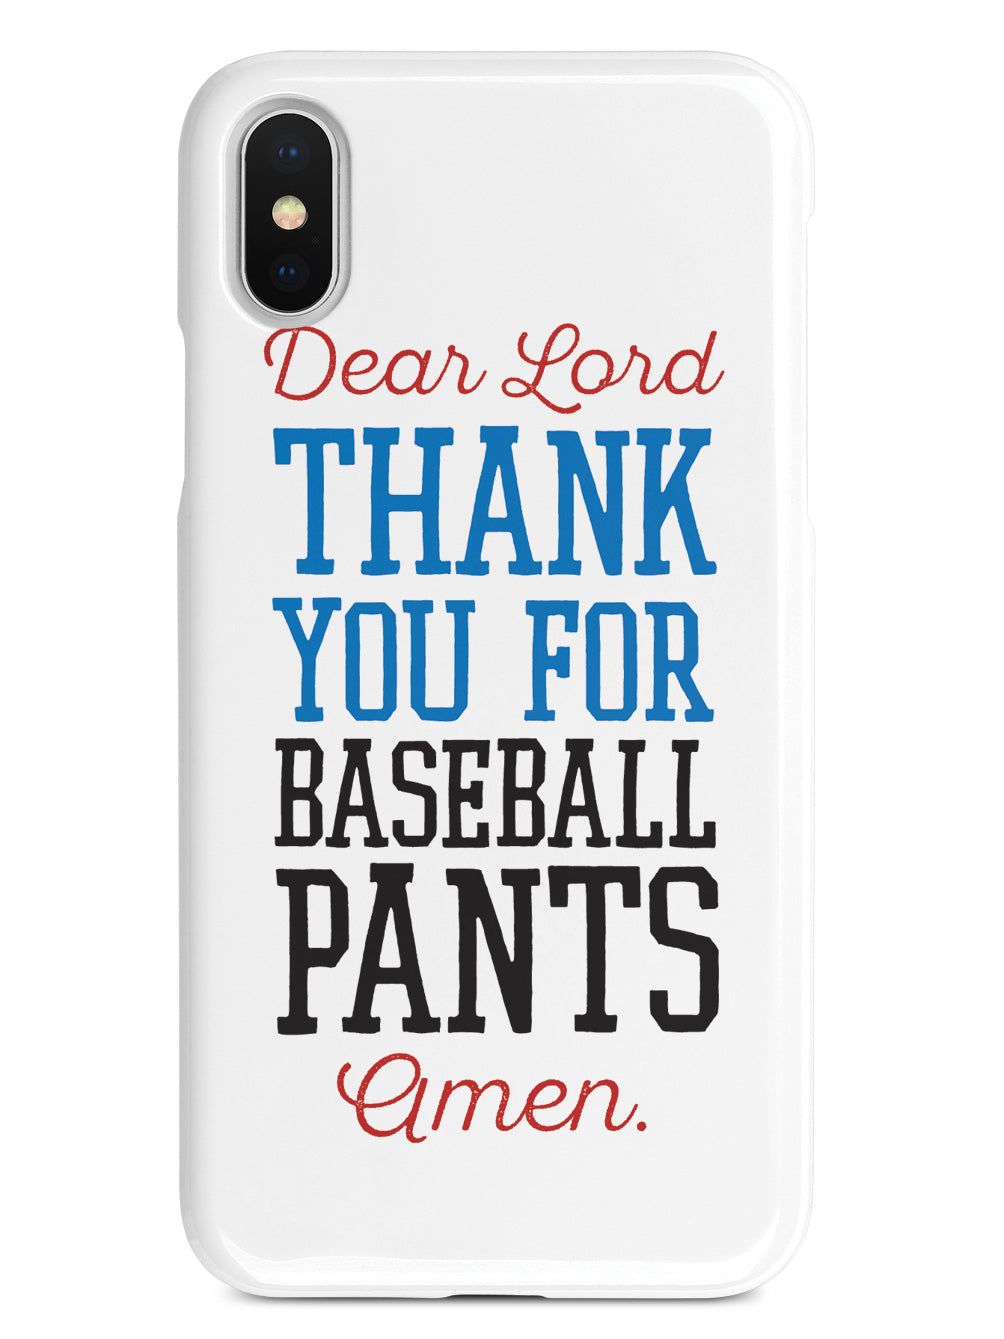 Thank You For Baseball Pants - Baseball Case